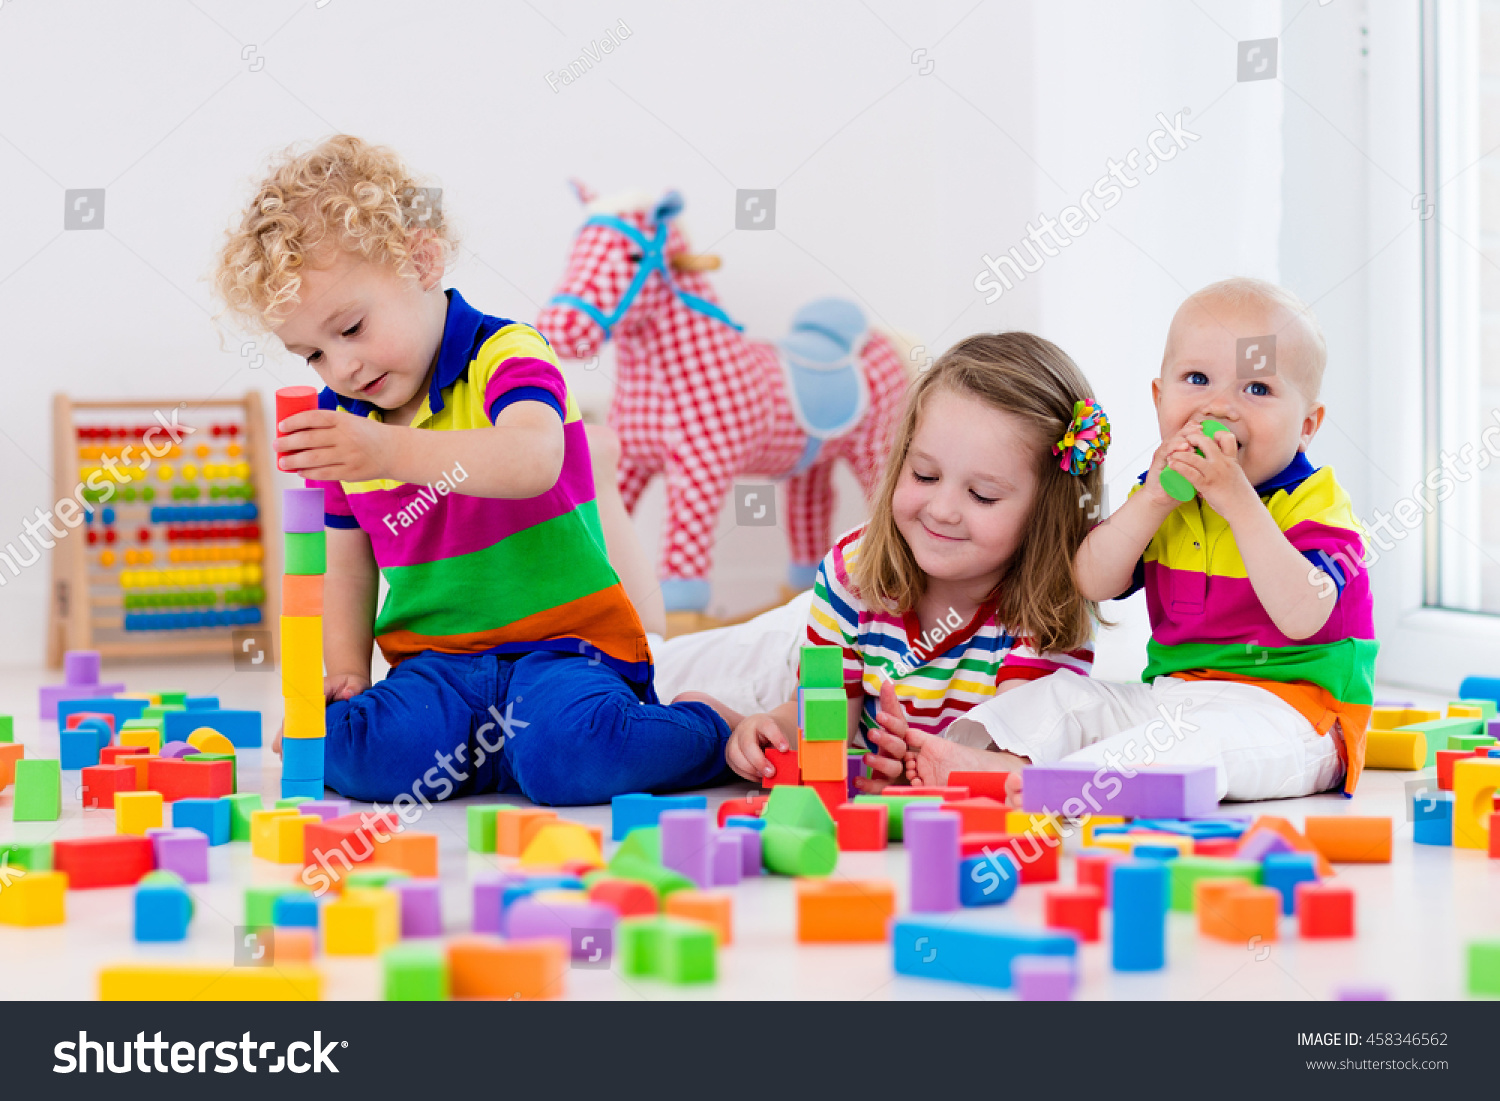 Day Care Toys For Toddler : Happy preschool age children play colorful stock photo